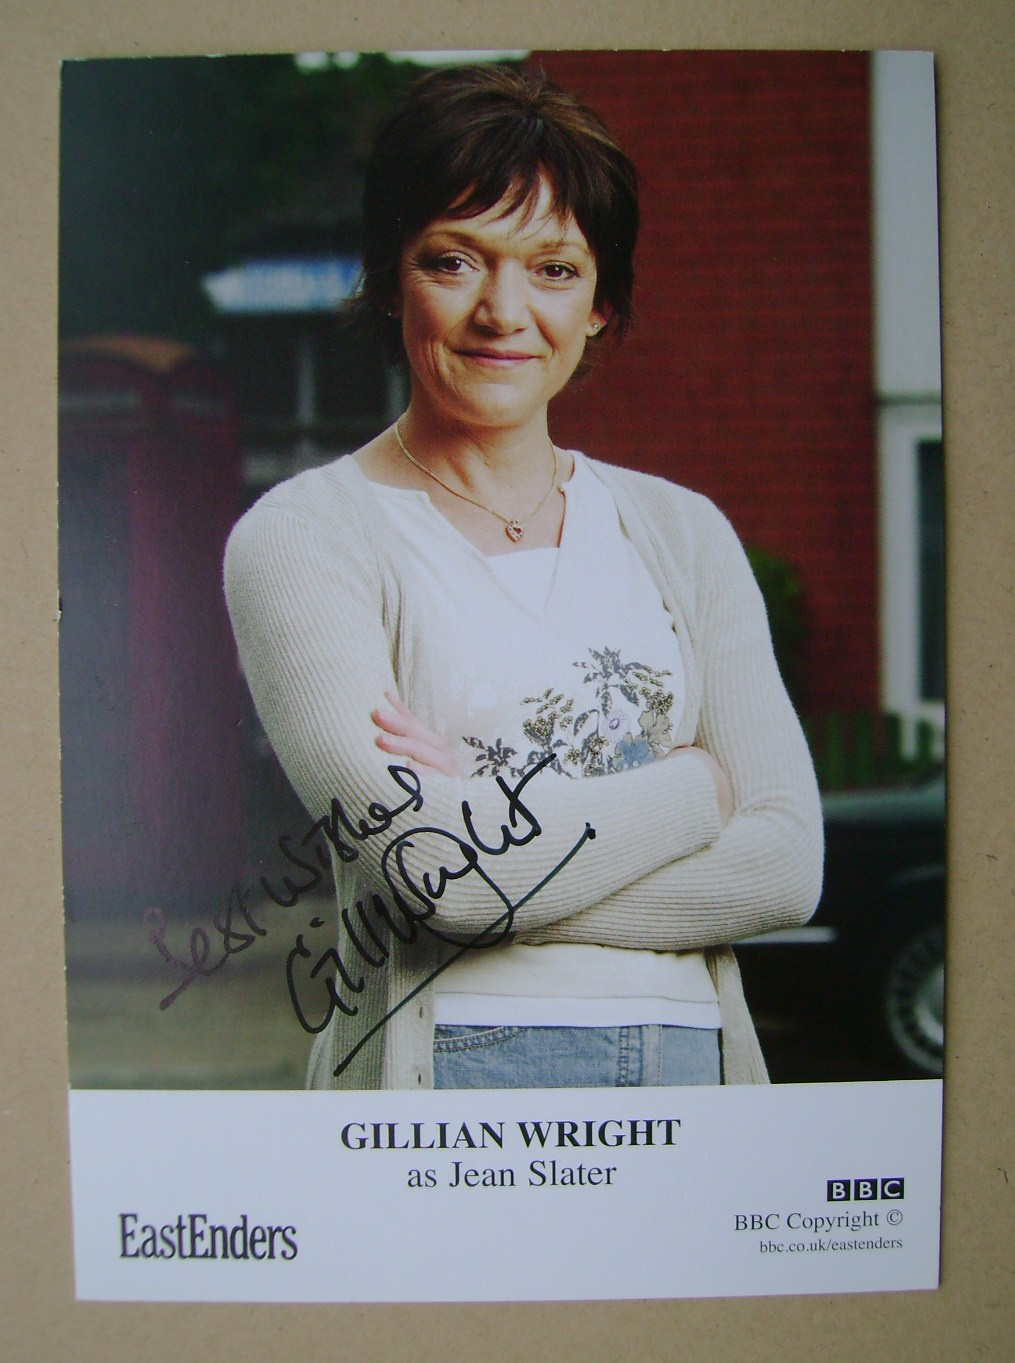 Gillian Wright autograph (EastEnders actor)